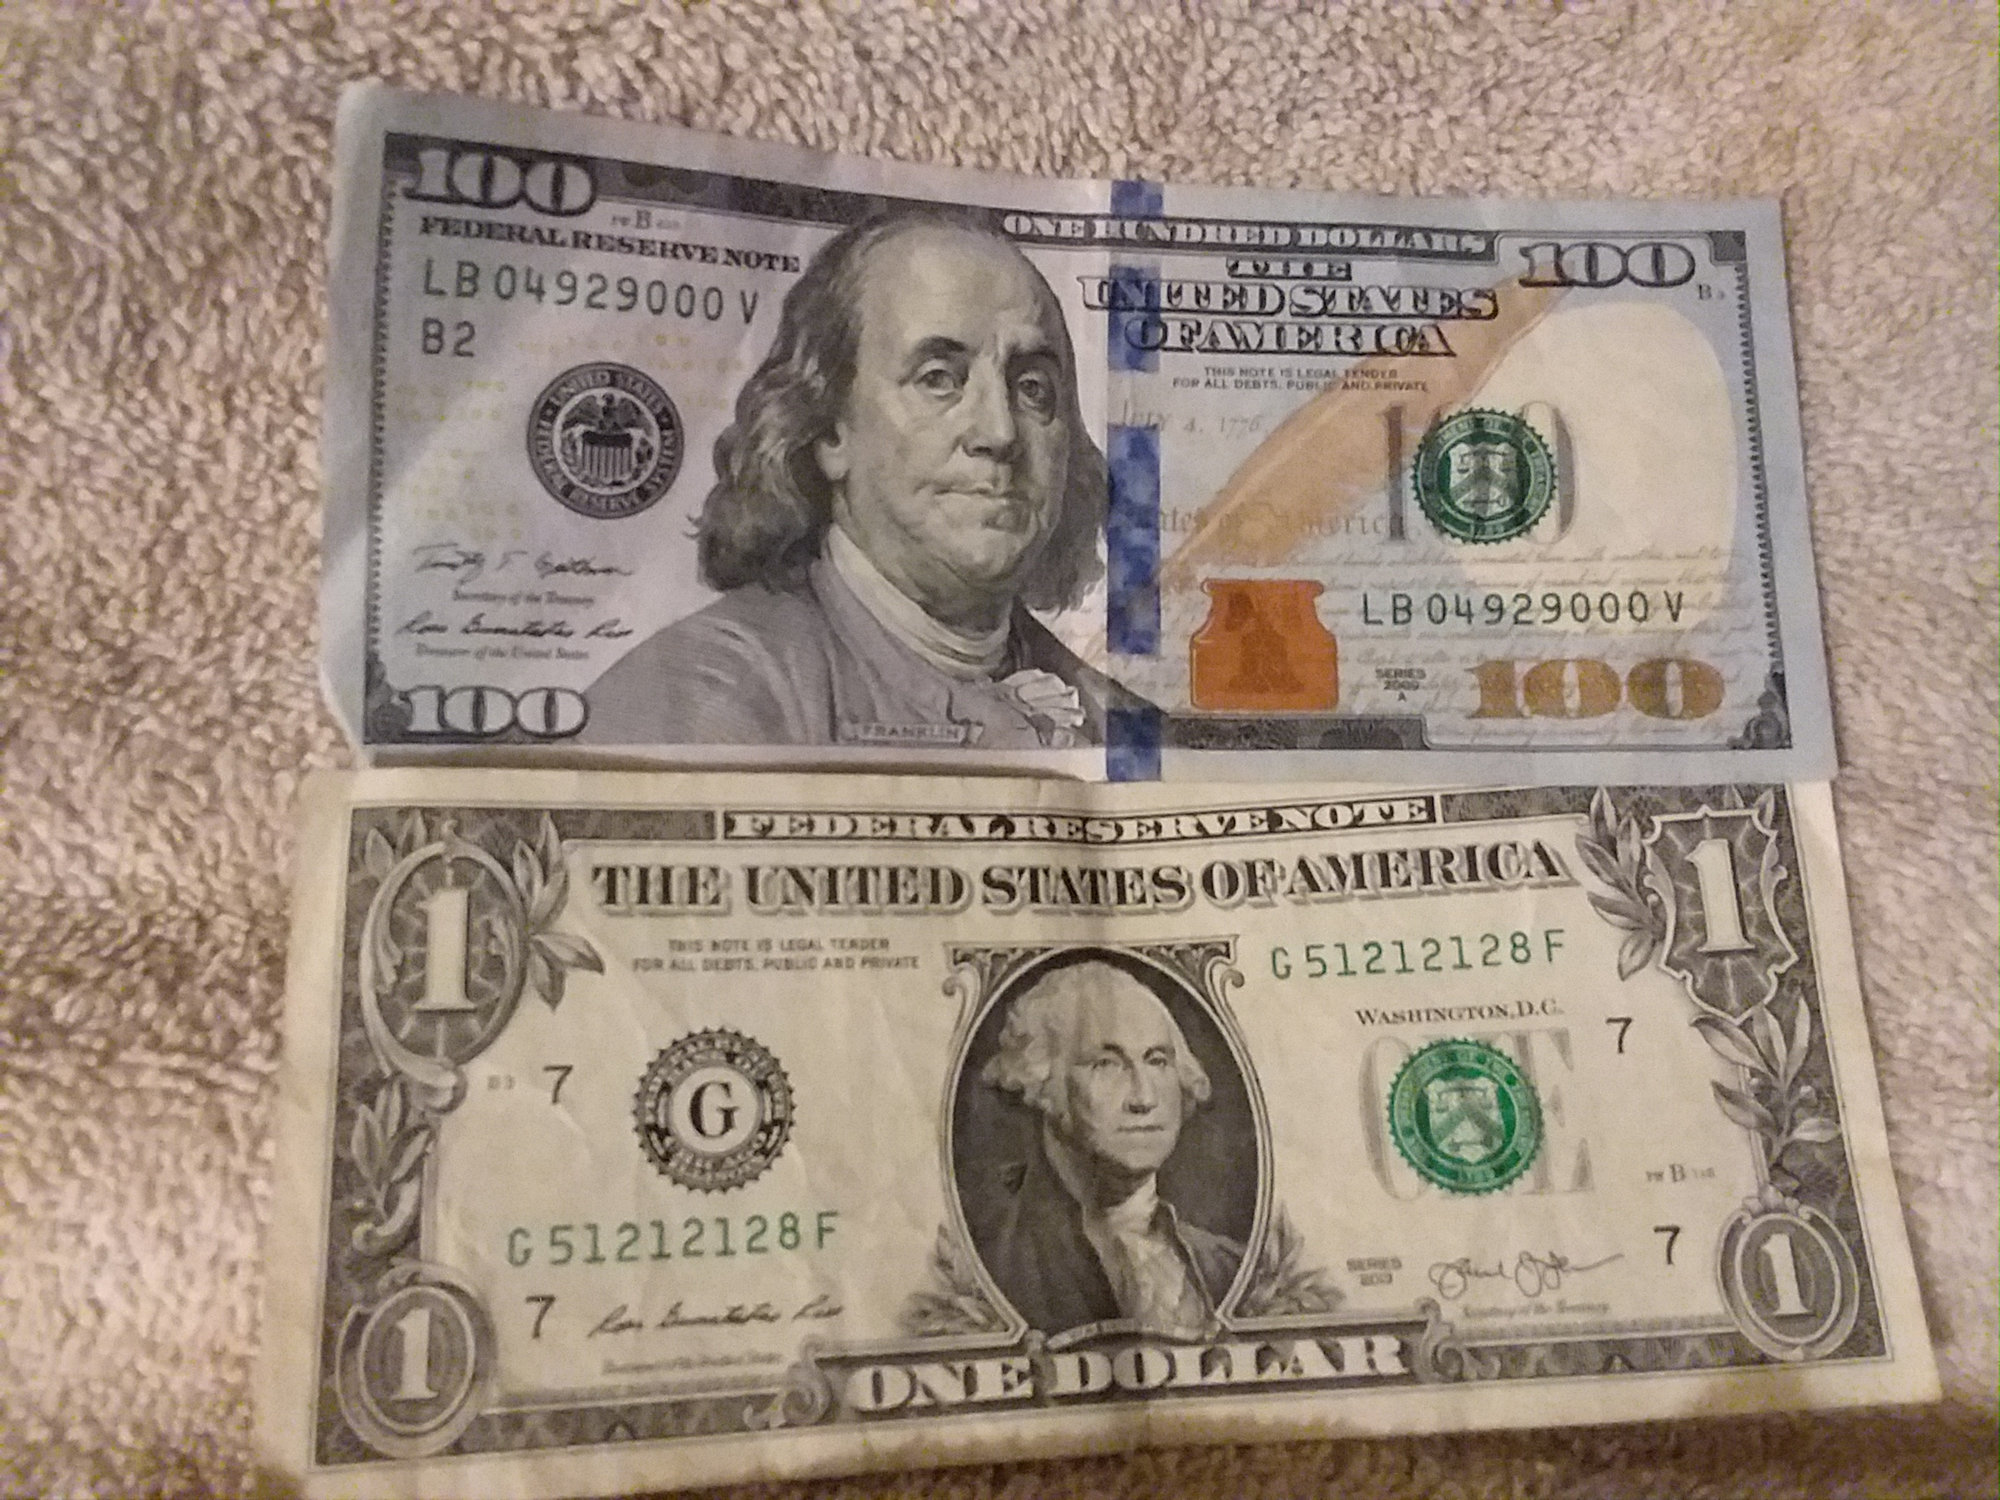 Check these serial numbers out, PLEASE SHARE INPUT